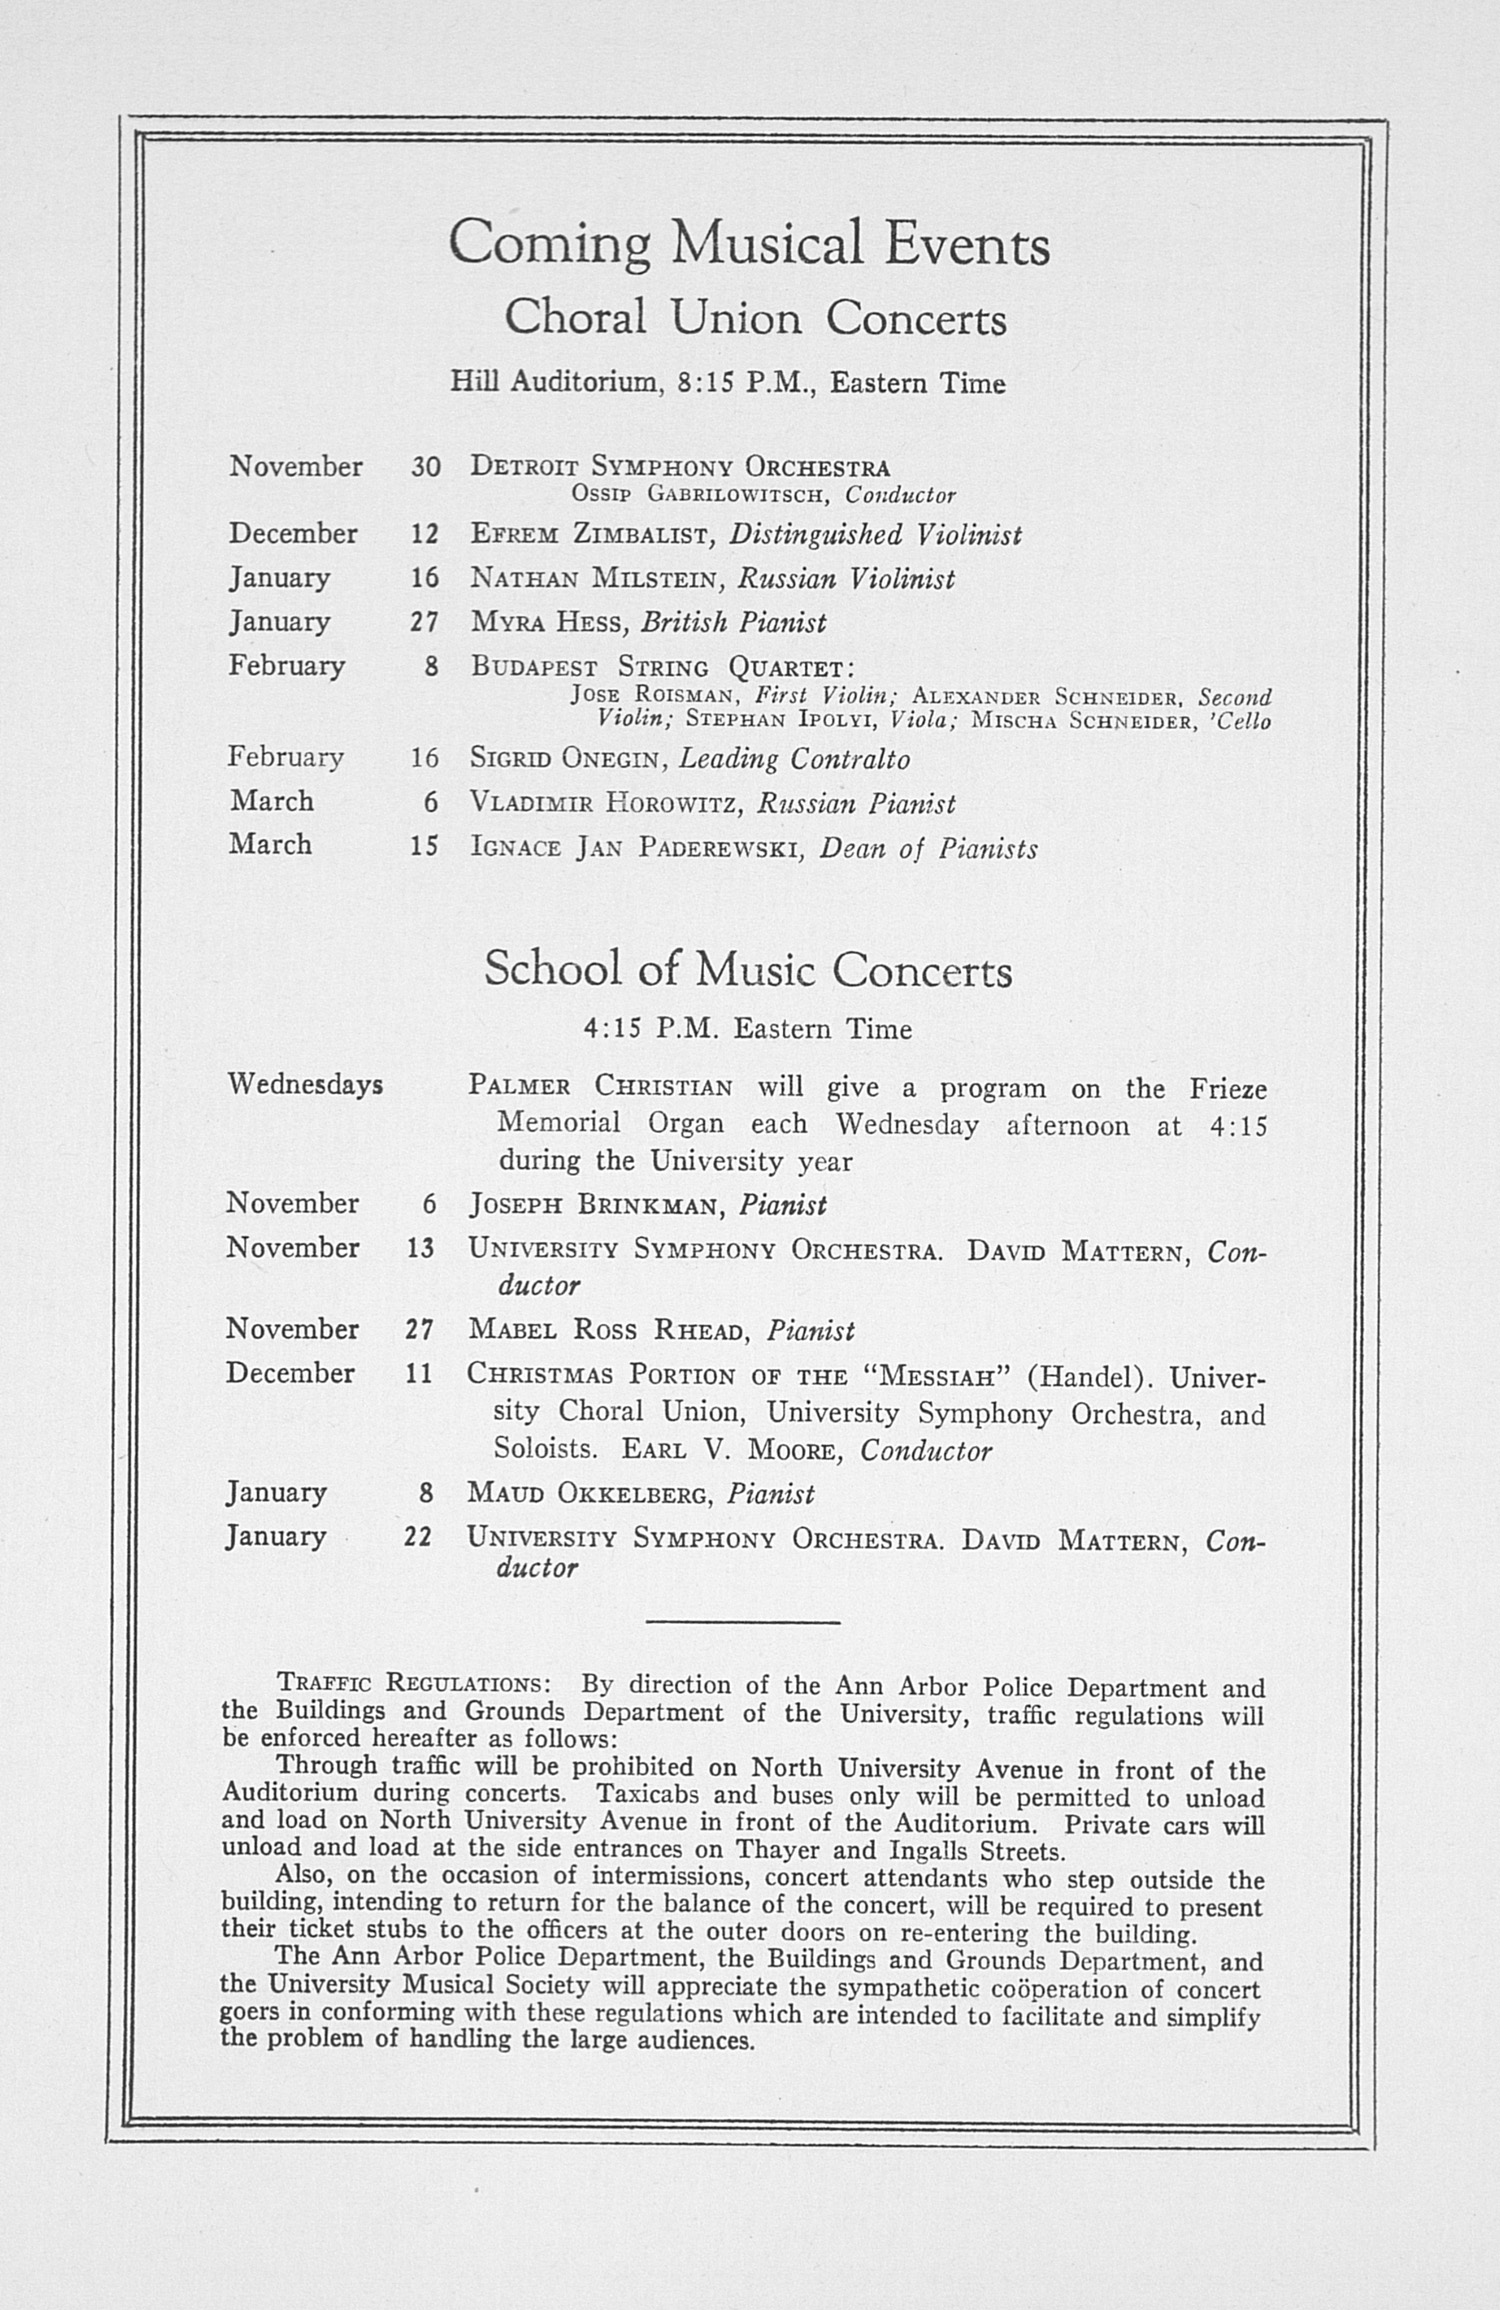 UMS Concert Program, November 2, 1932: Fifty-fourth Annual Choral Union Concert Series -- Lawrence Tibbett image